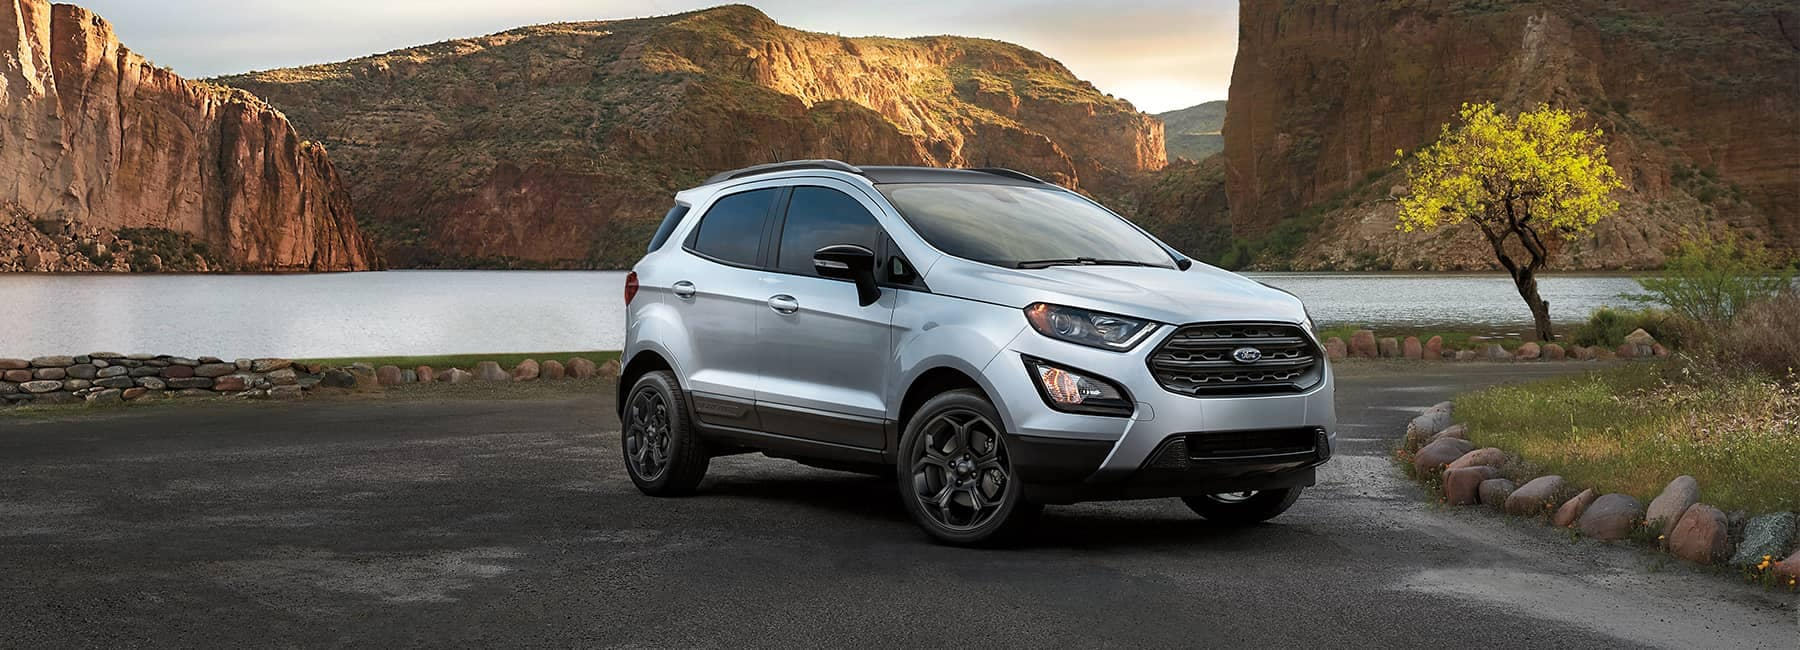 Silver 2021 Ford EcoSport parked on a river overlook in a canyon